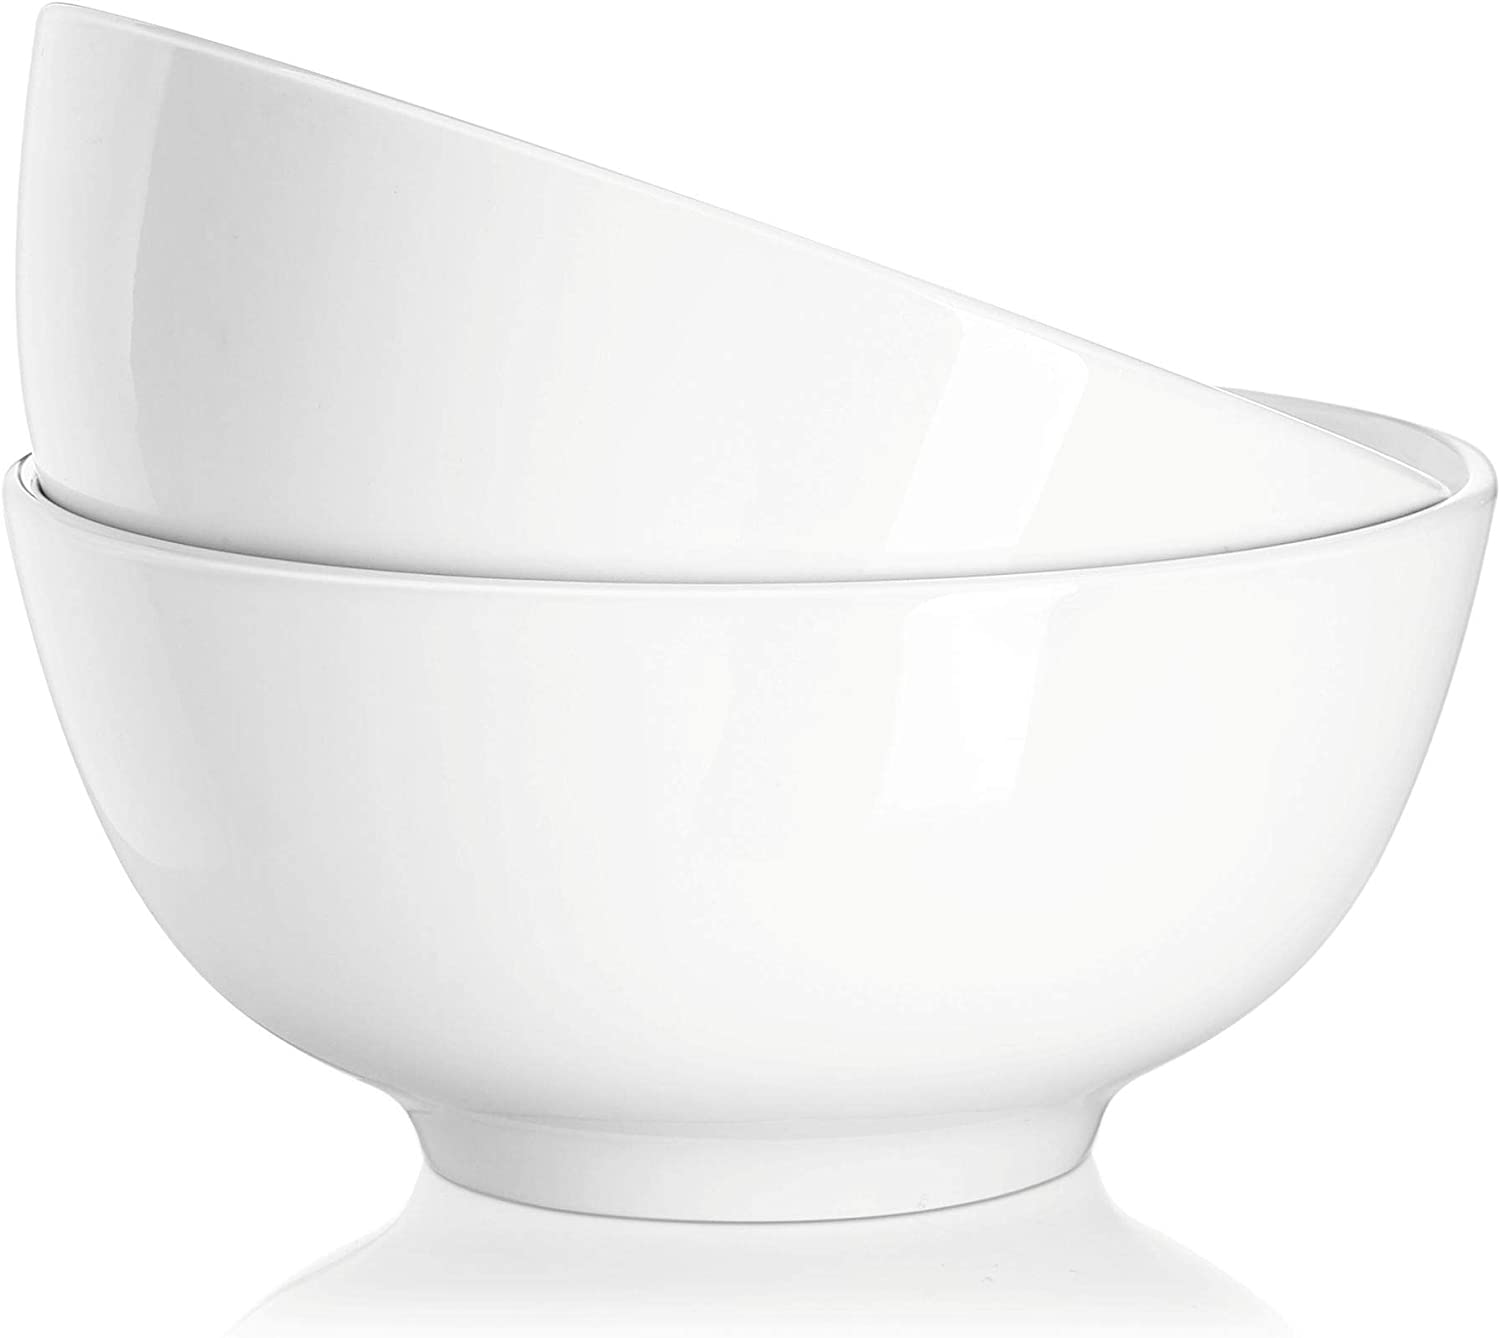 DOWAN 22 Ounce Porcelain Soup and Cereal Bowls, 2 Packs, White